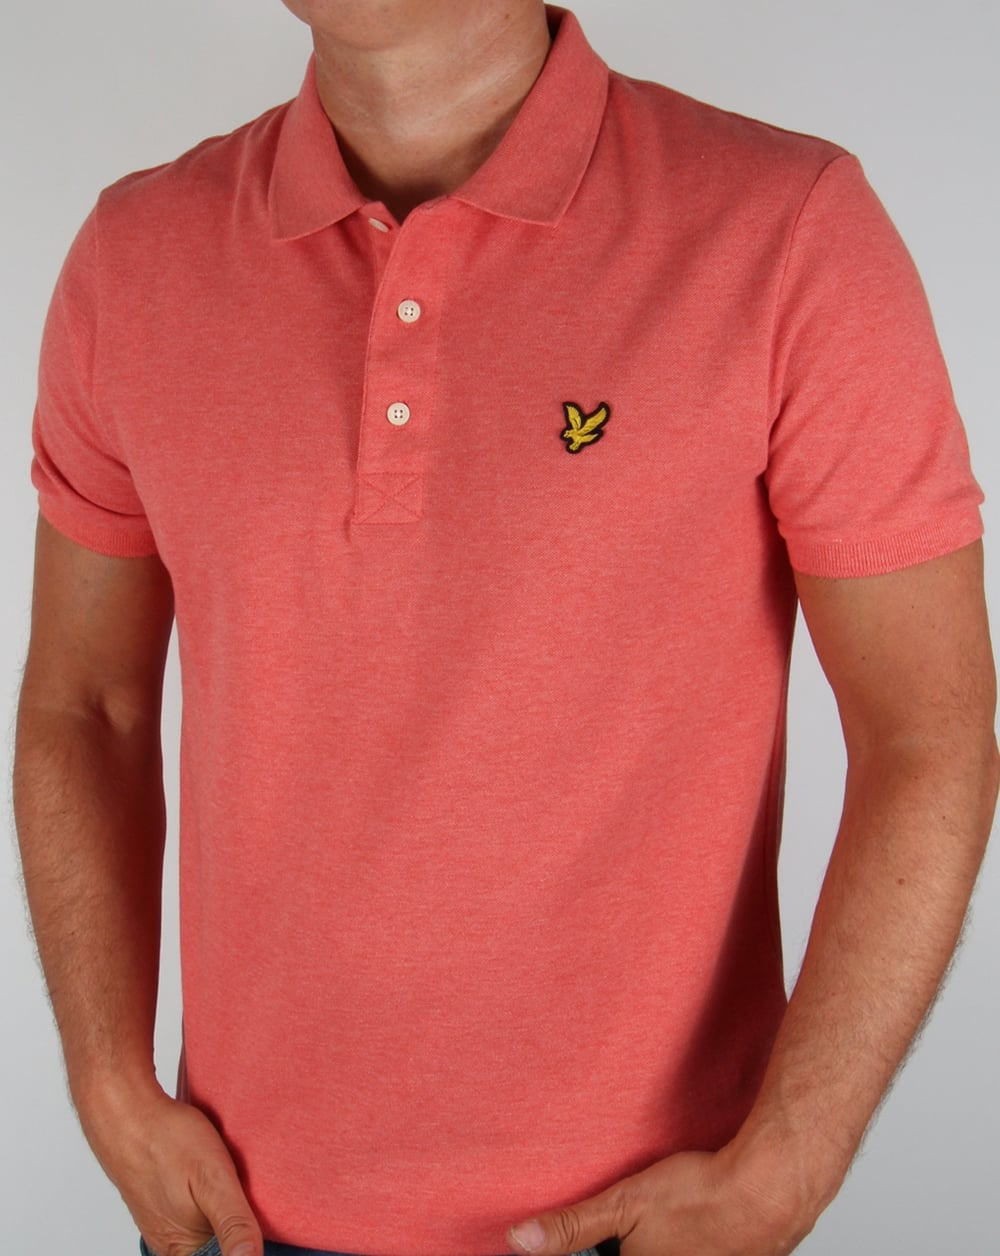 lyle and scott polo shirt terracotta marl men 39 s pink top samon. Black Bedroom Furniture Sets. Home Design Ideas